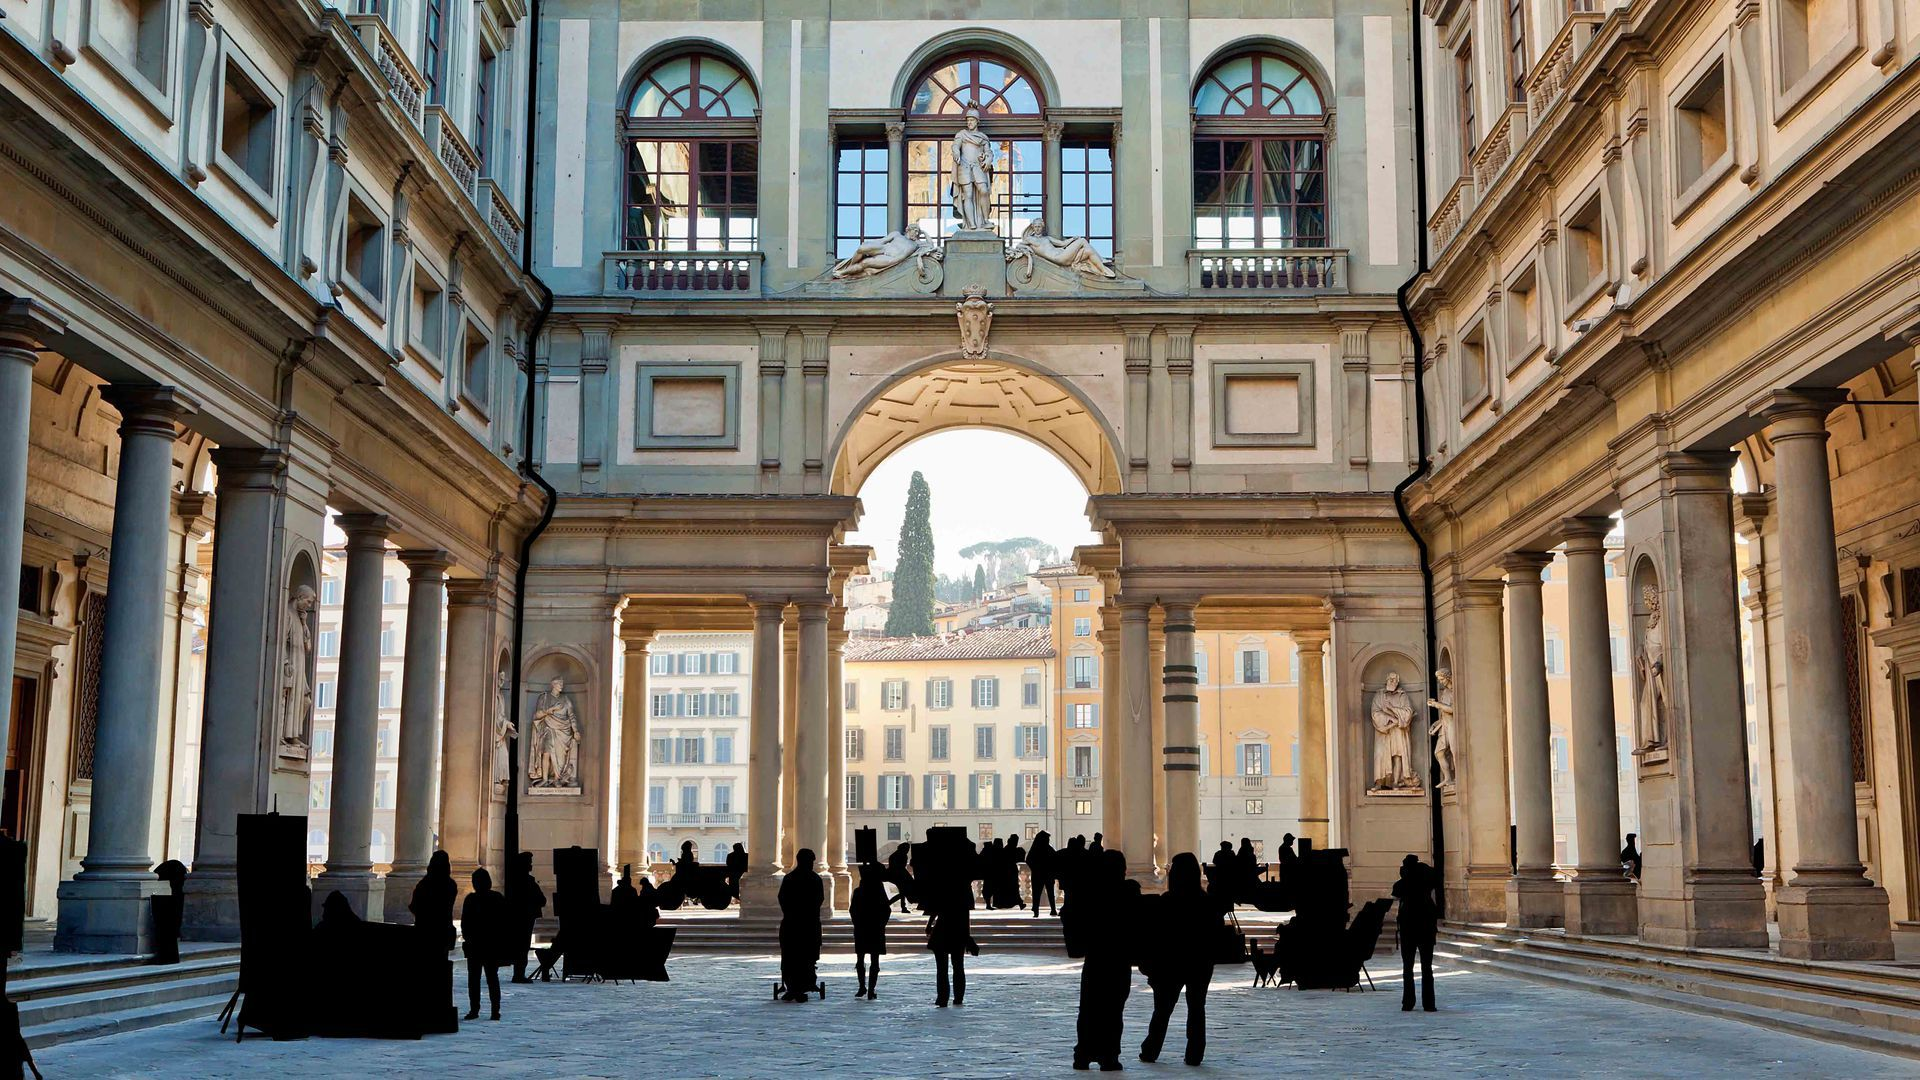 Urban Exploration and Visit to the Accademia and Uffizi Galleries